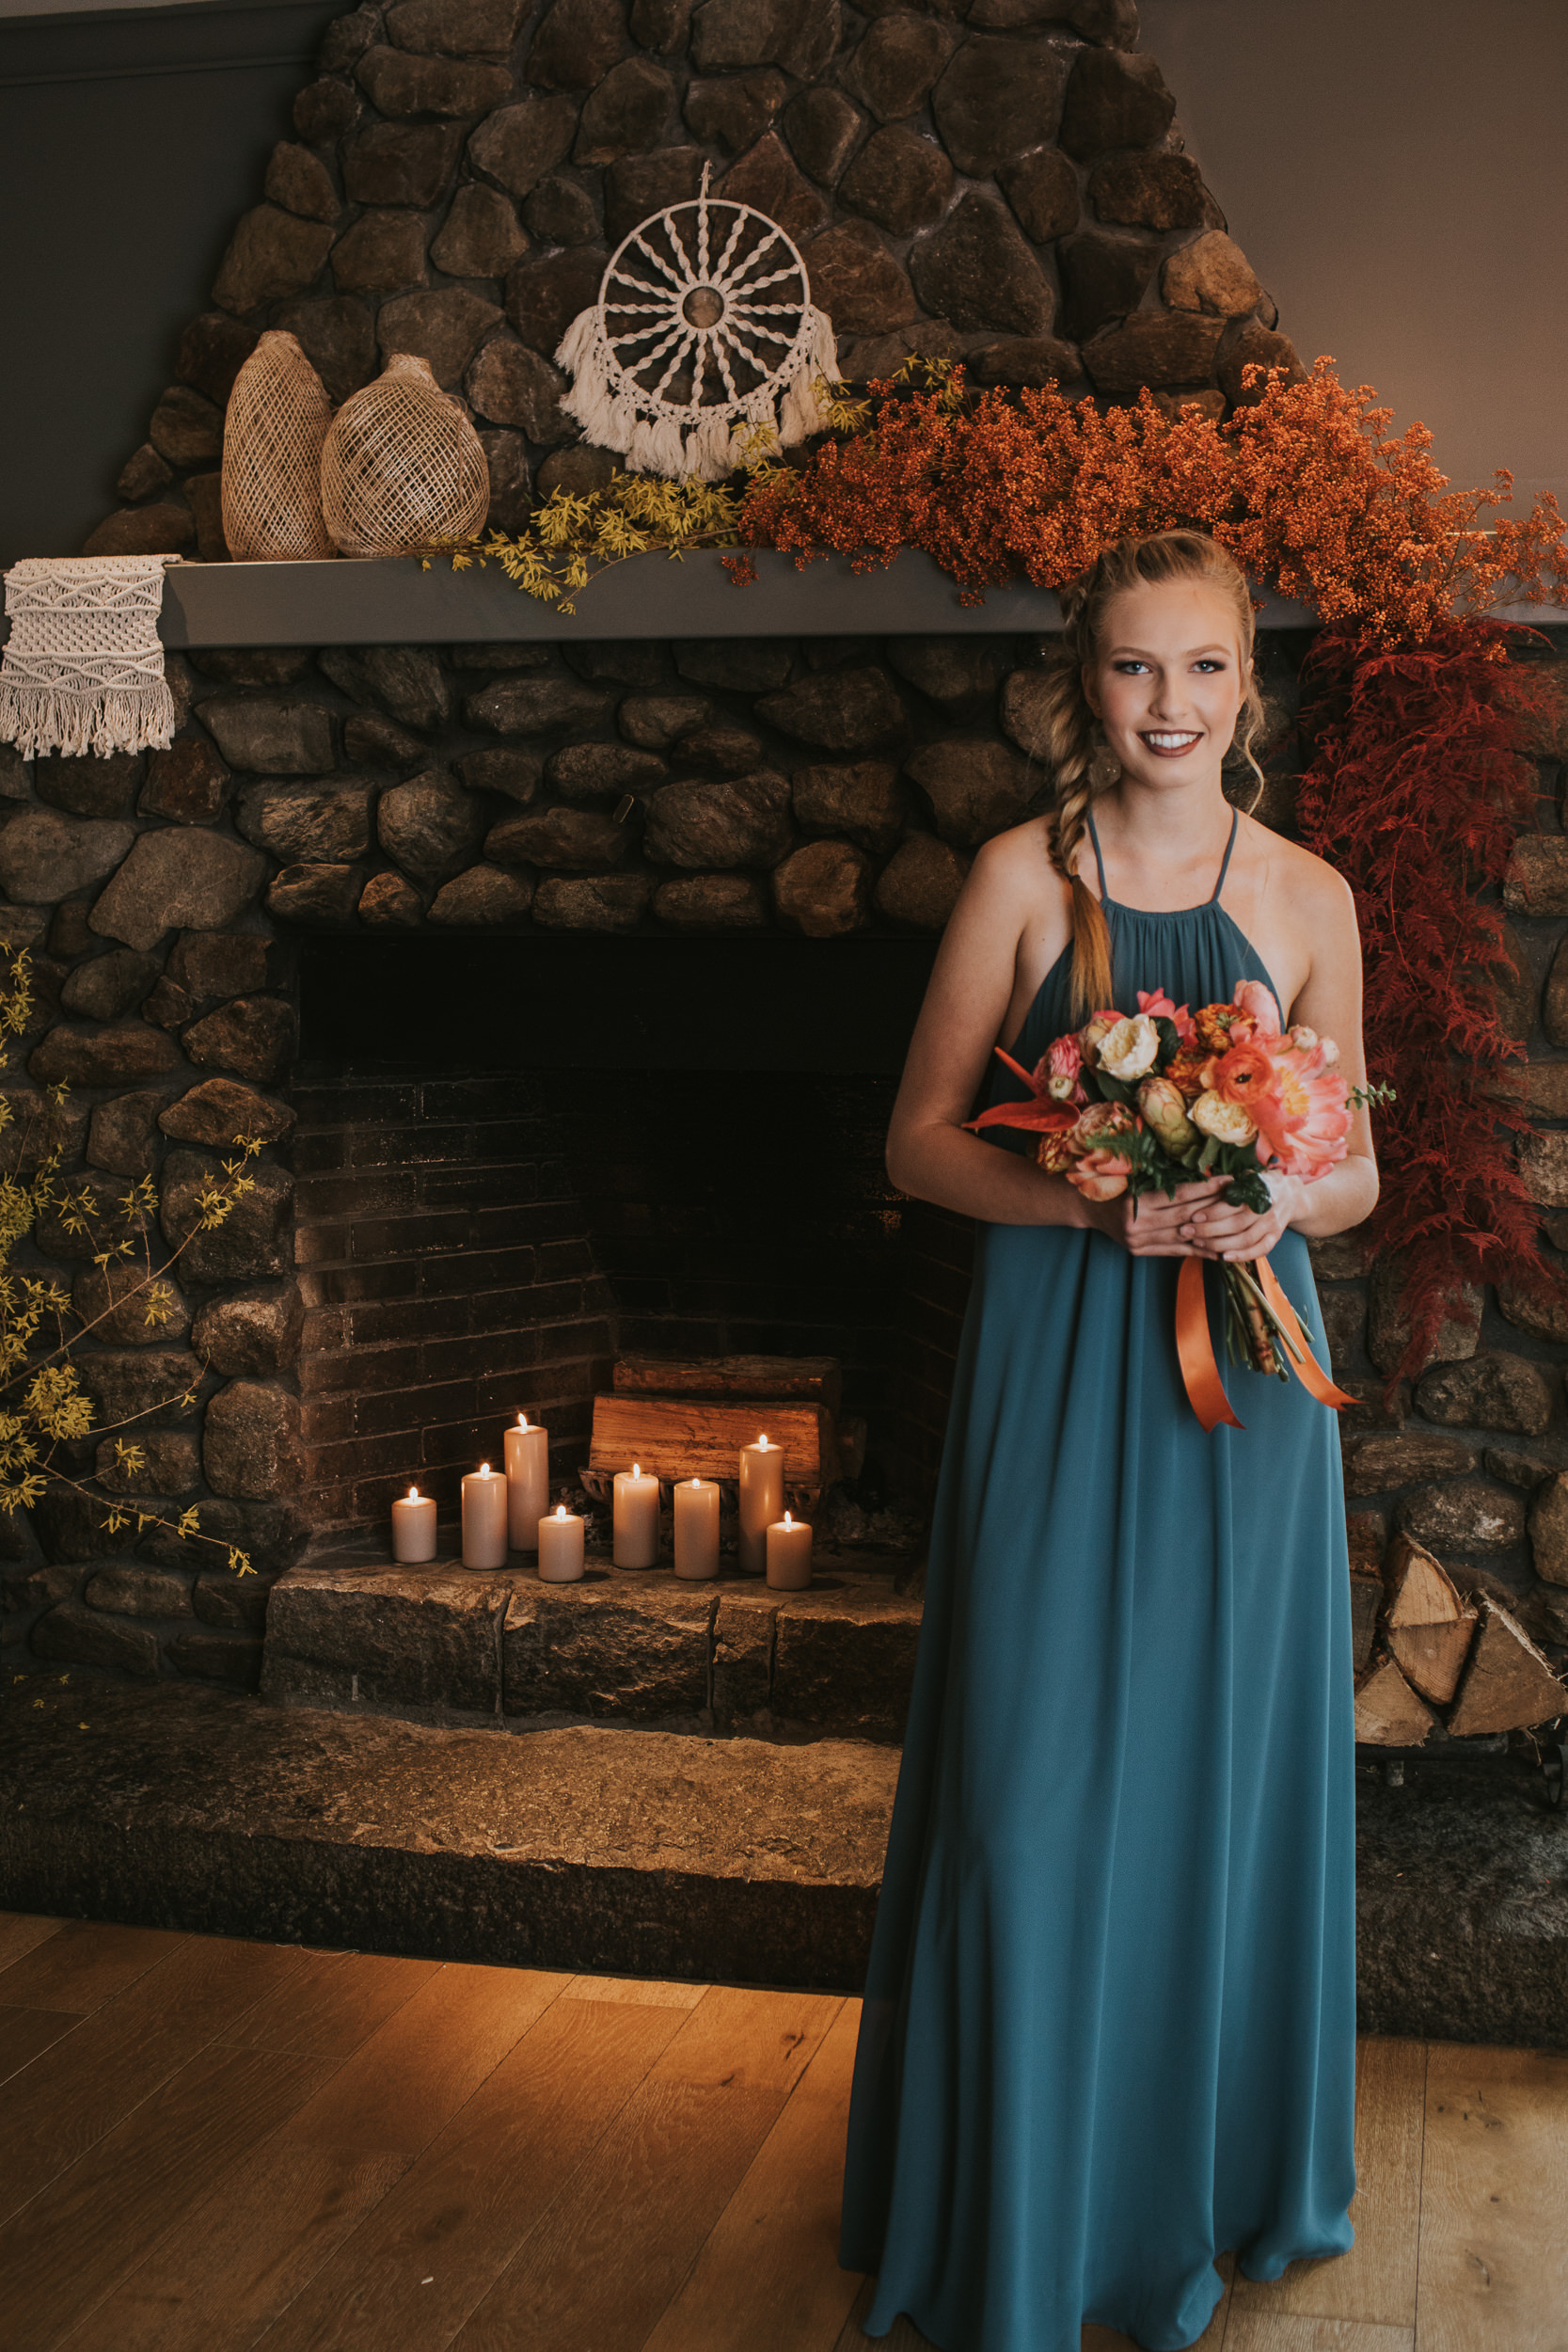 Walkers Maine Wedding Styled Photoshoot Minka Flowers © Heidi Kirn Photography 450330.jpg